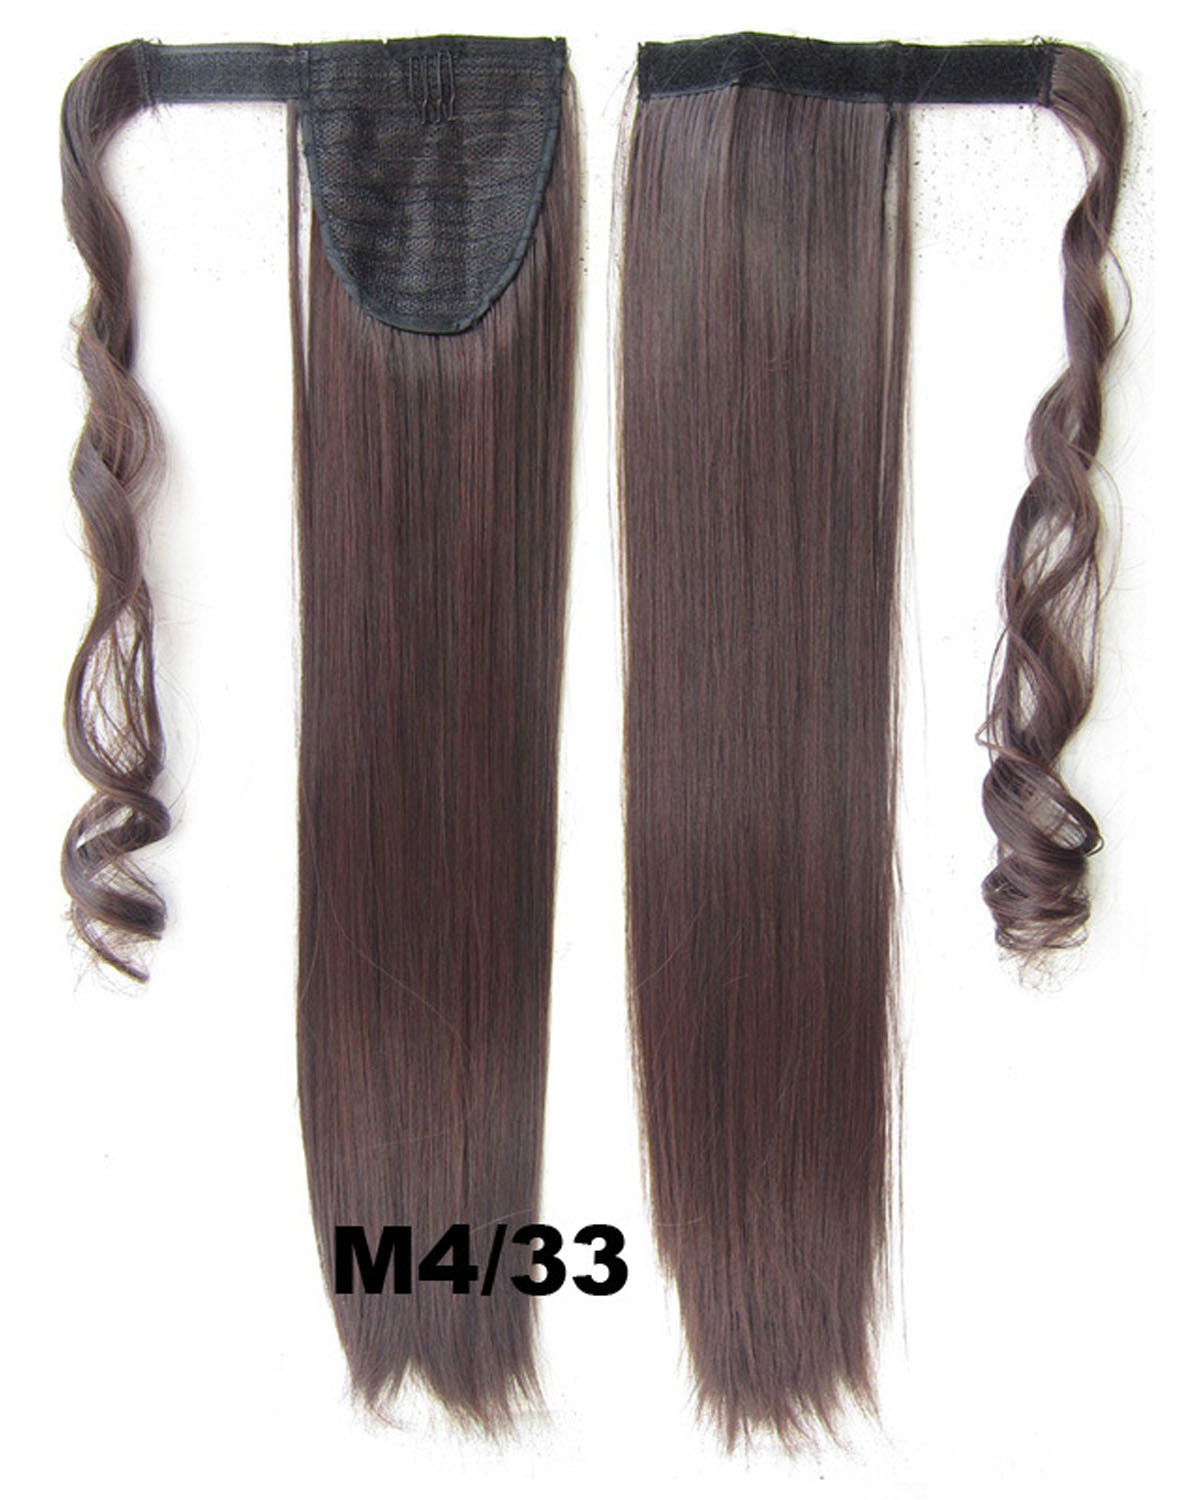 22 Inch Lady Graceful Curly and Long Wrap Around Synthetic Hair Ponytail  M4/33#